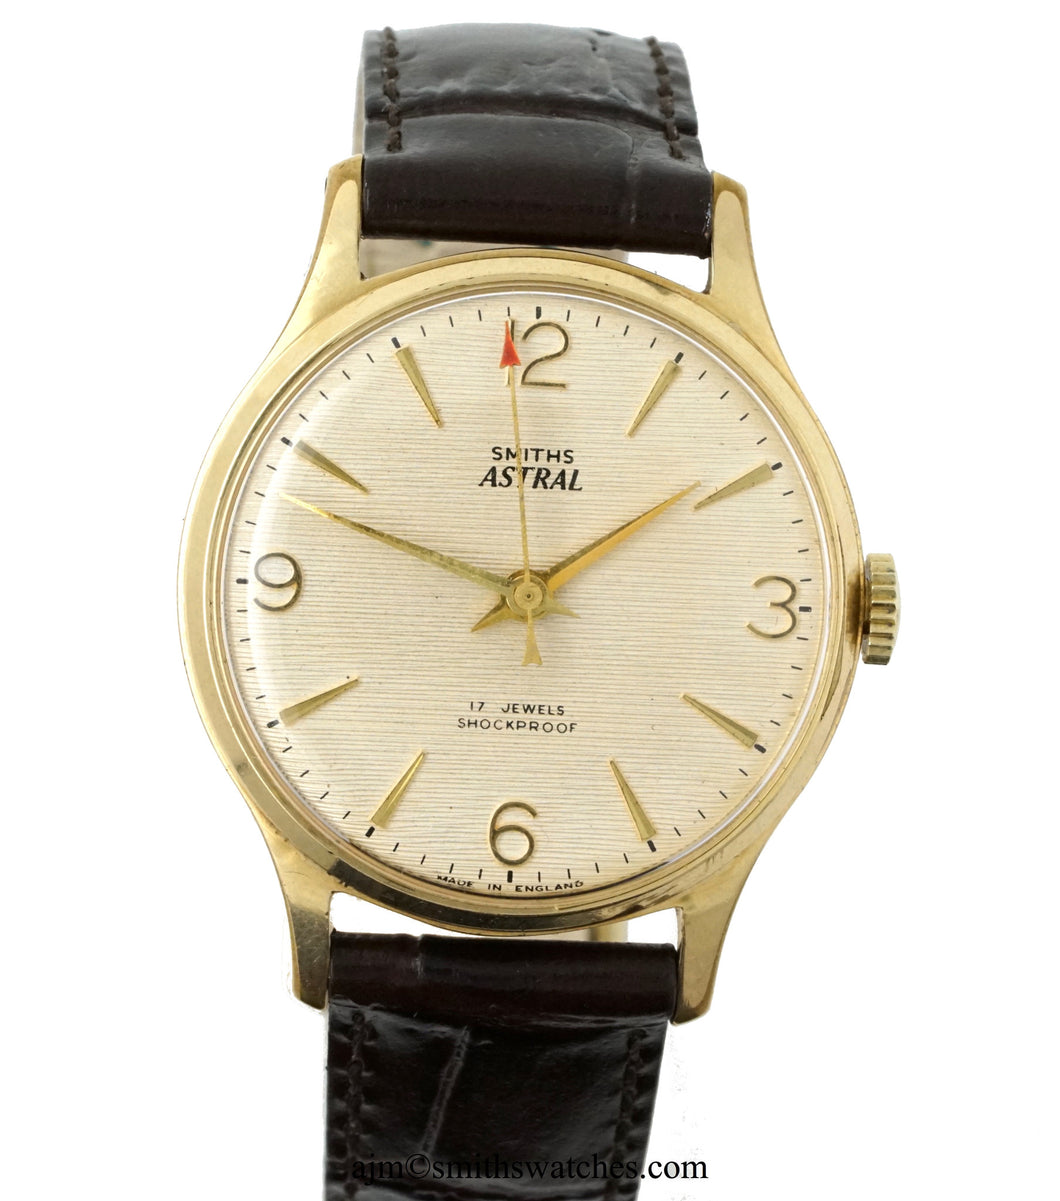 ASTRAL SMITHS 17 JEWEL GOLD PLATED ENGLISH WRISTWATCH SERVICED 3